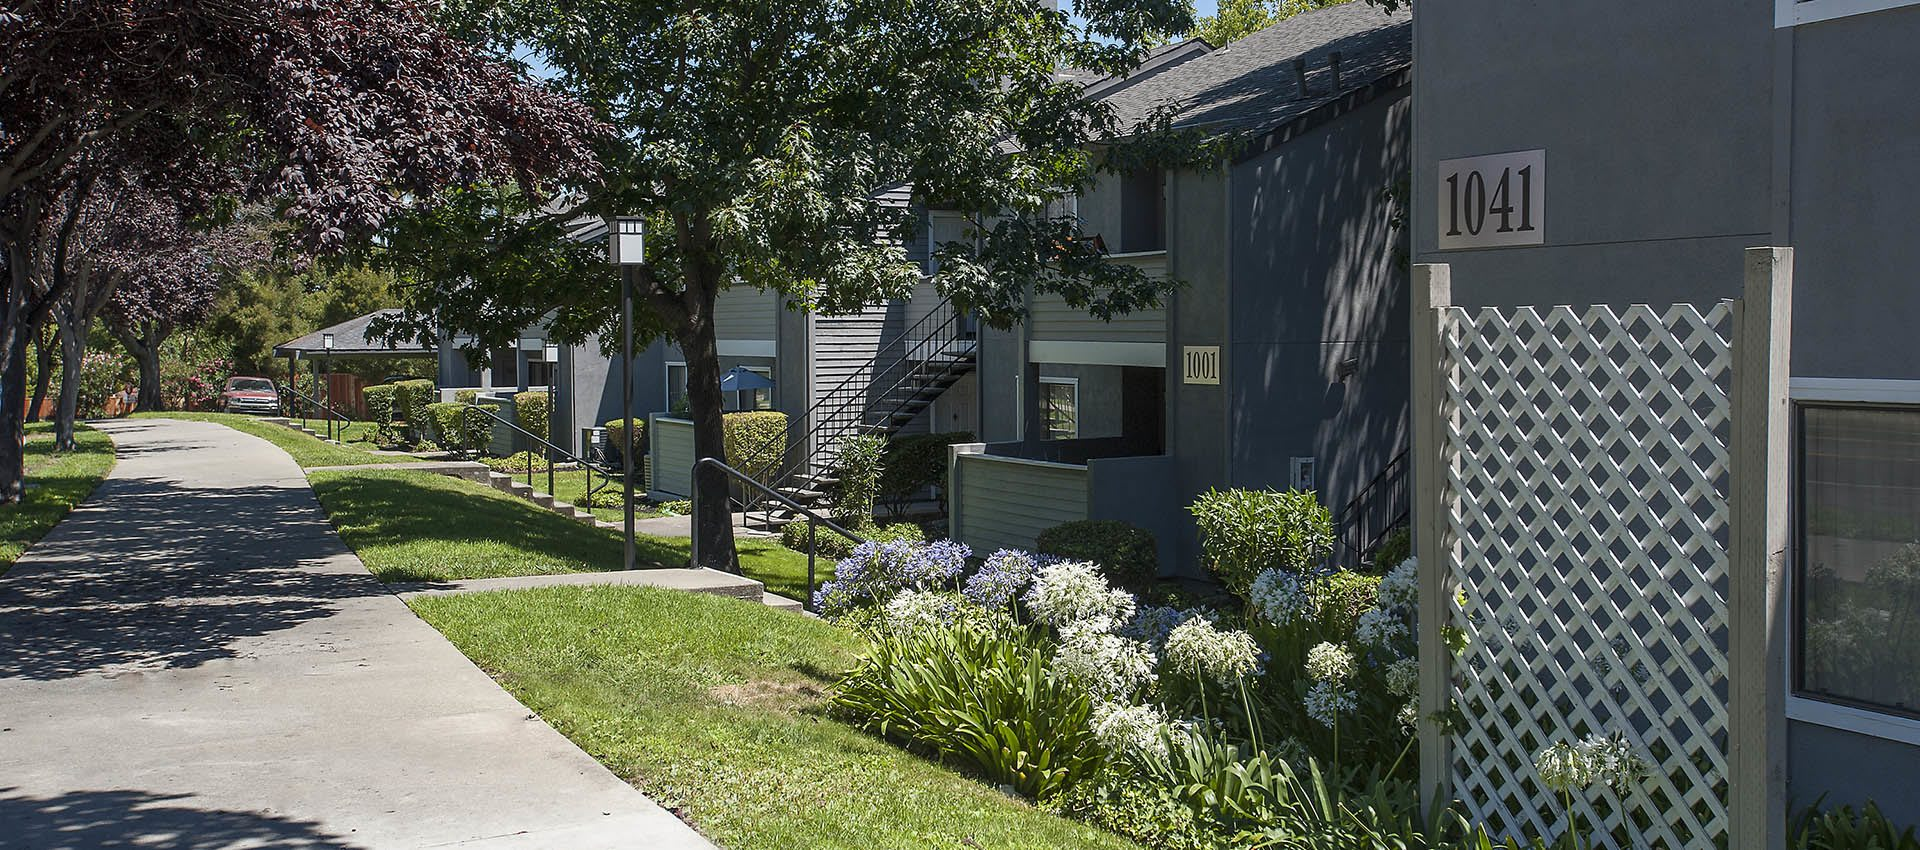 Nicely Landscaped Yards at Plum Tree Apartment Homes in Martinez, California